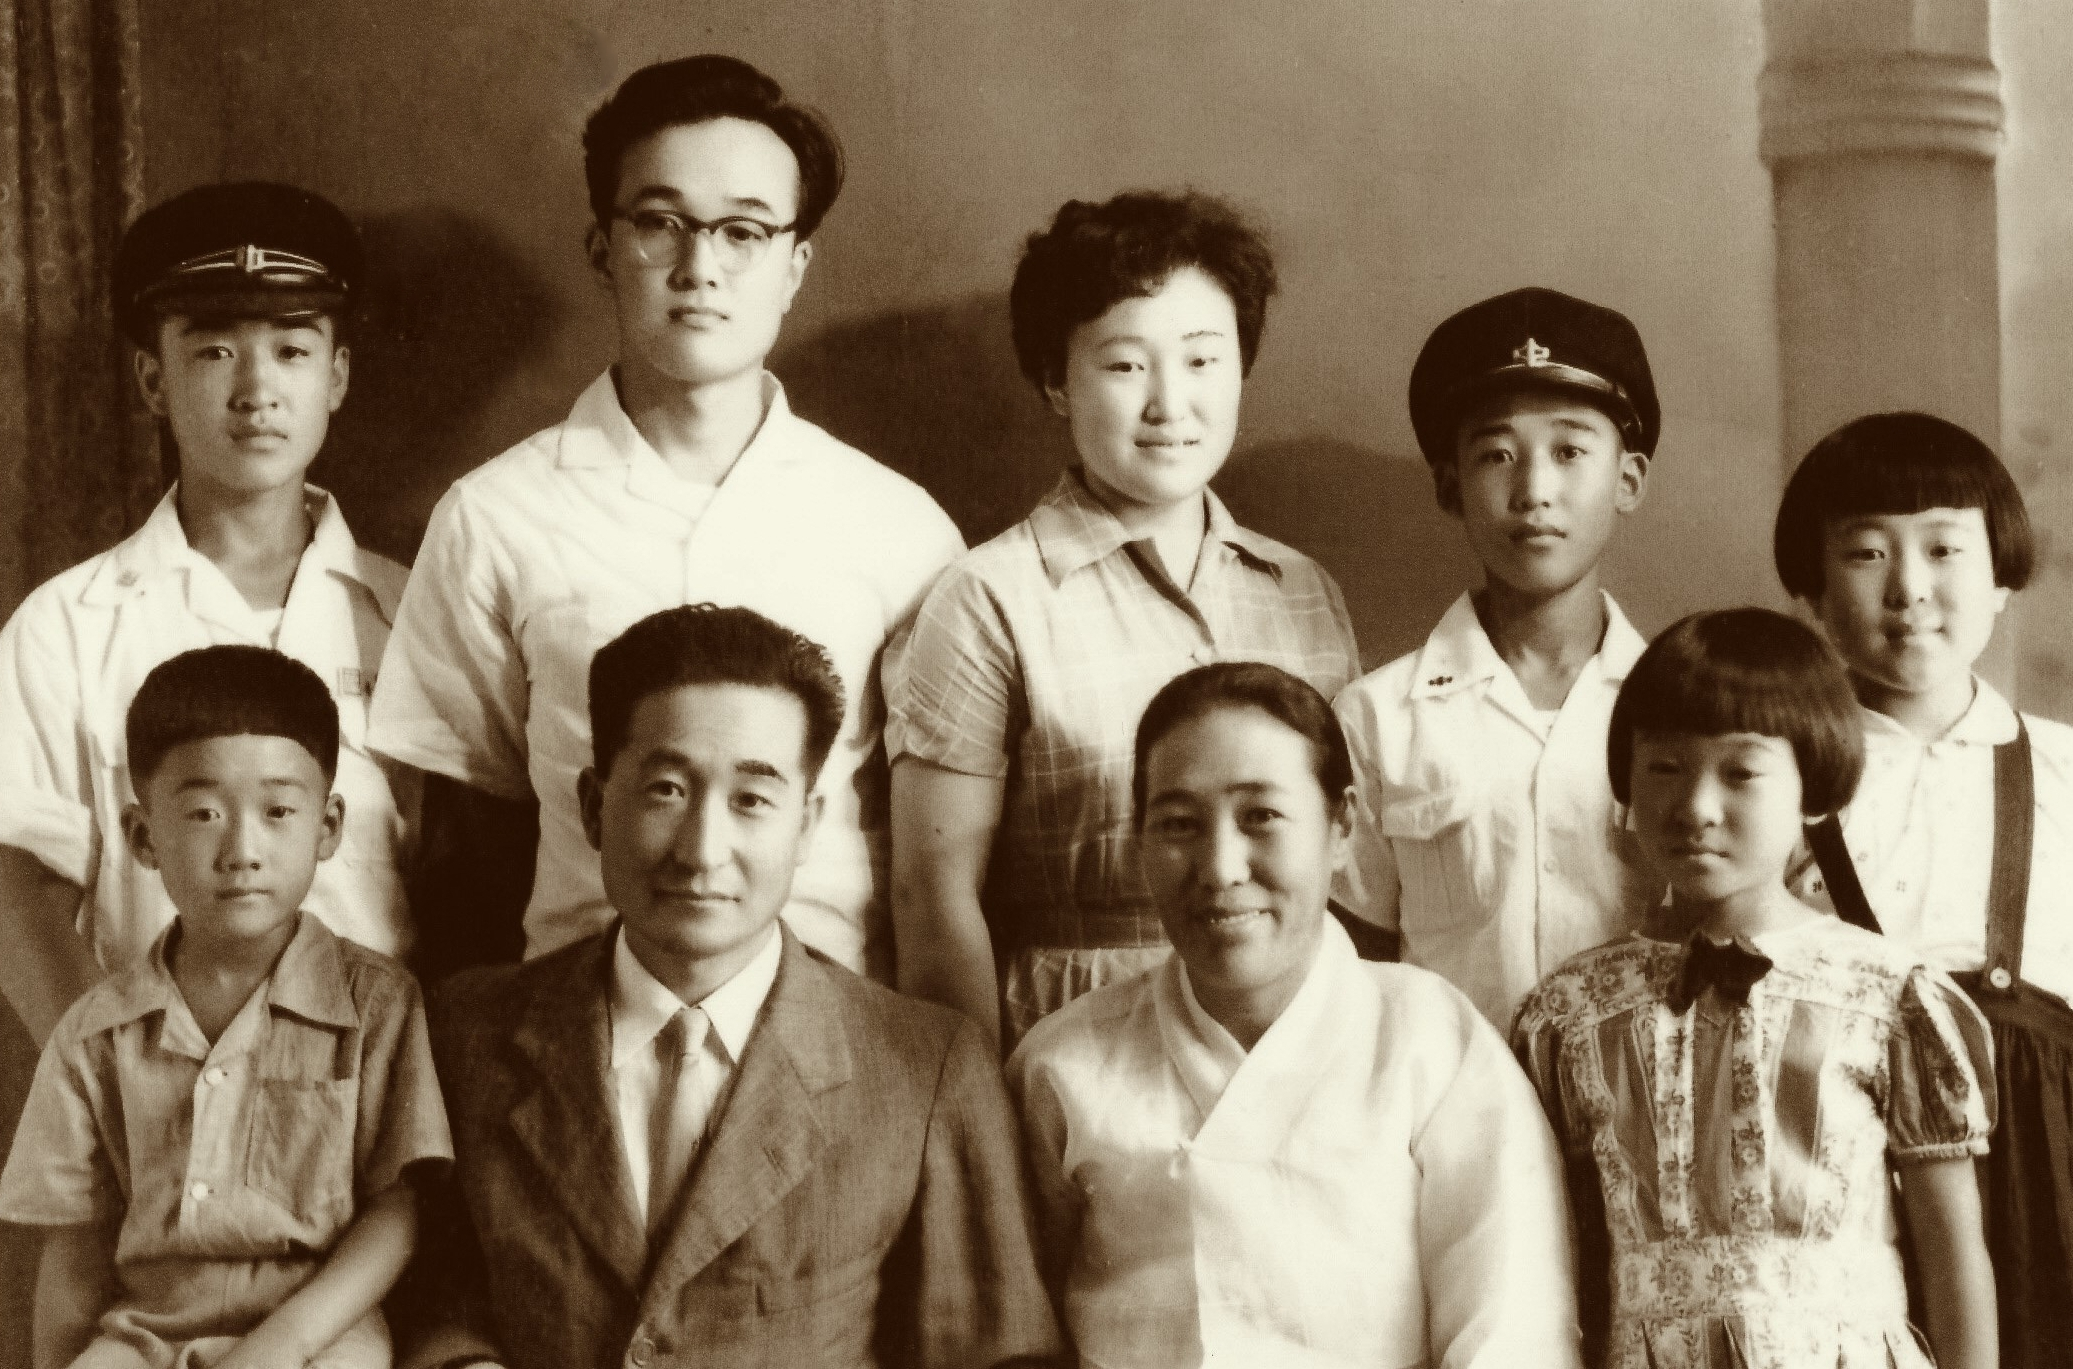 Front row (far right), Cathy Chang's mother, Haewon Lee, with her parents and siblings in Korea (1950s). Photo credit: Rosaline Maria